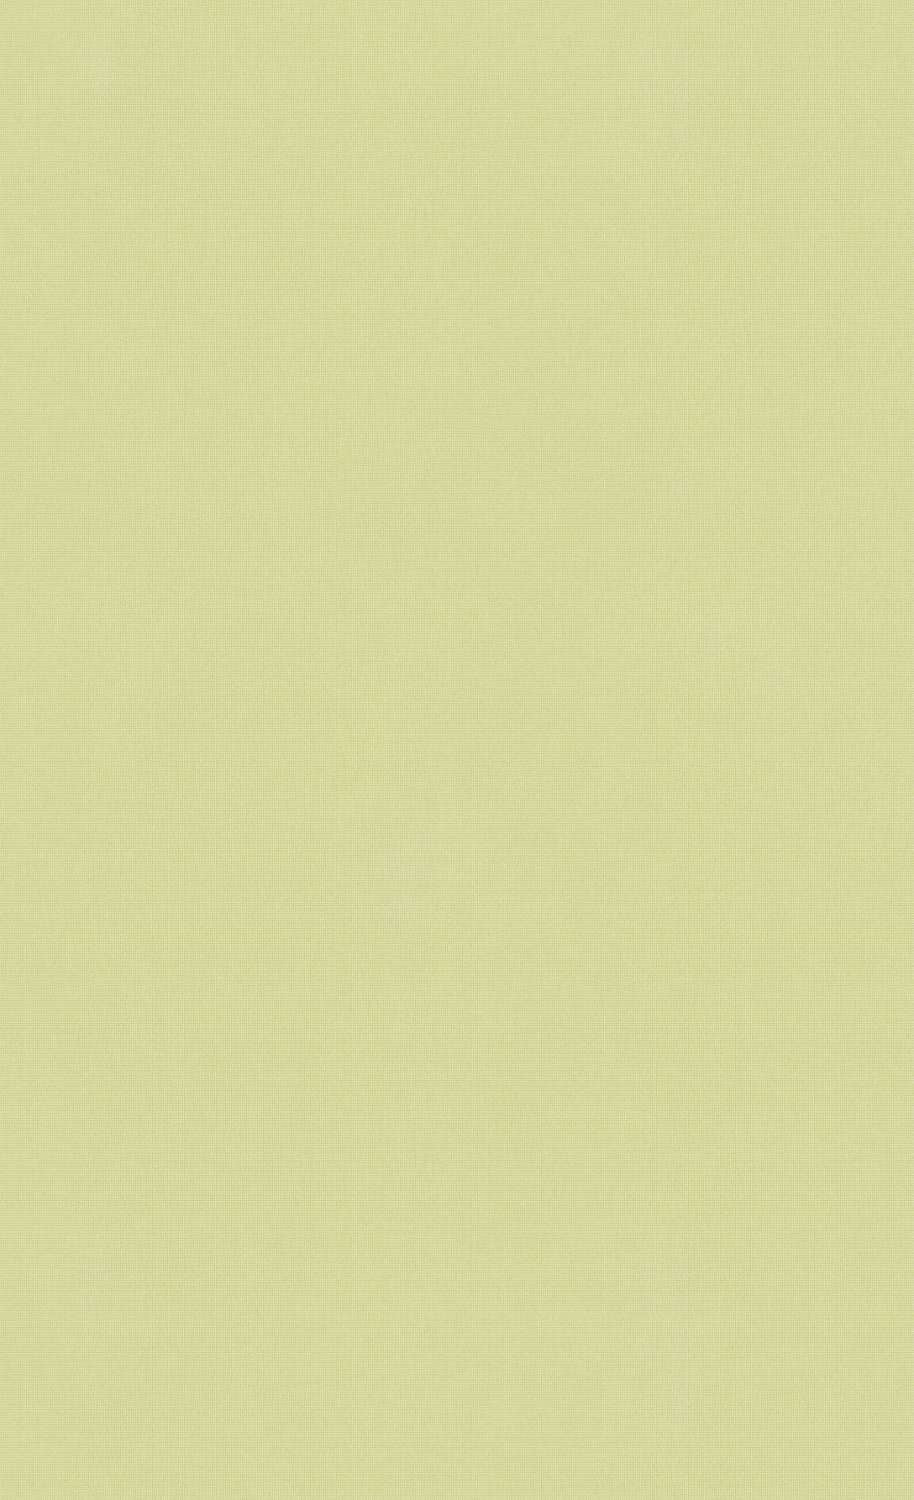 Minimalist Olive Green Wallpaper C7287 | Commercial and Hospitality